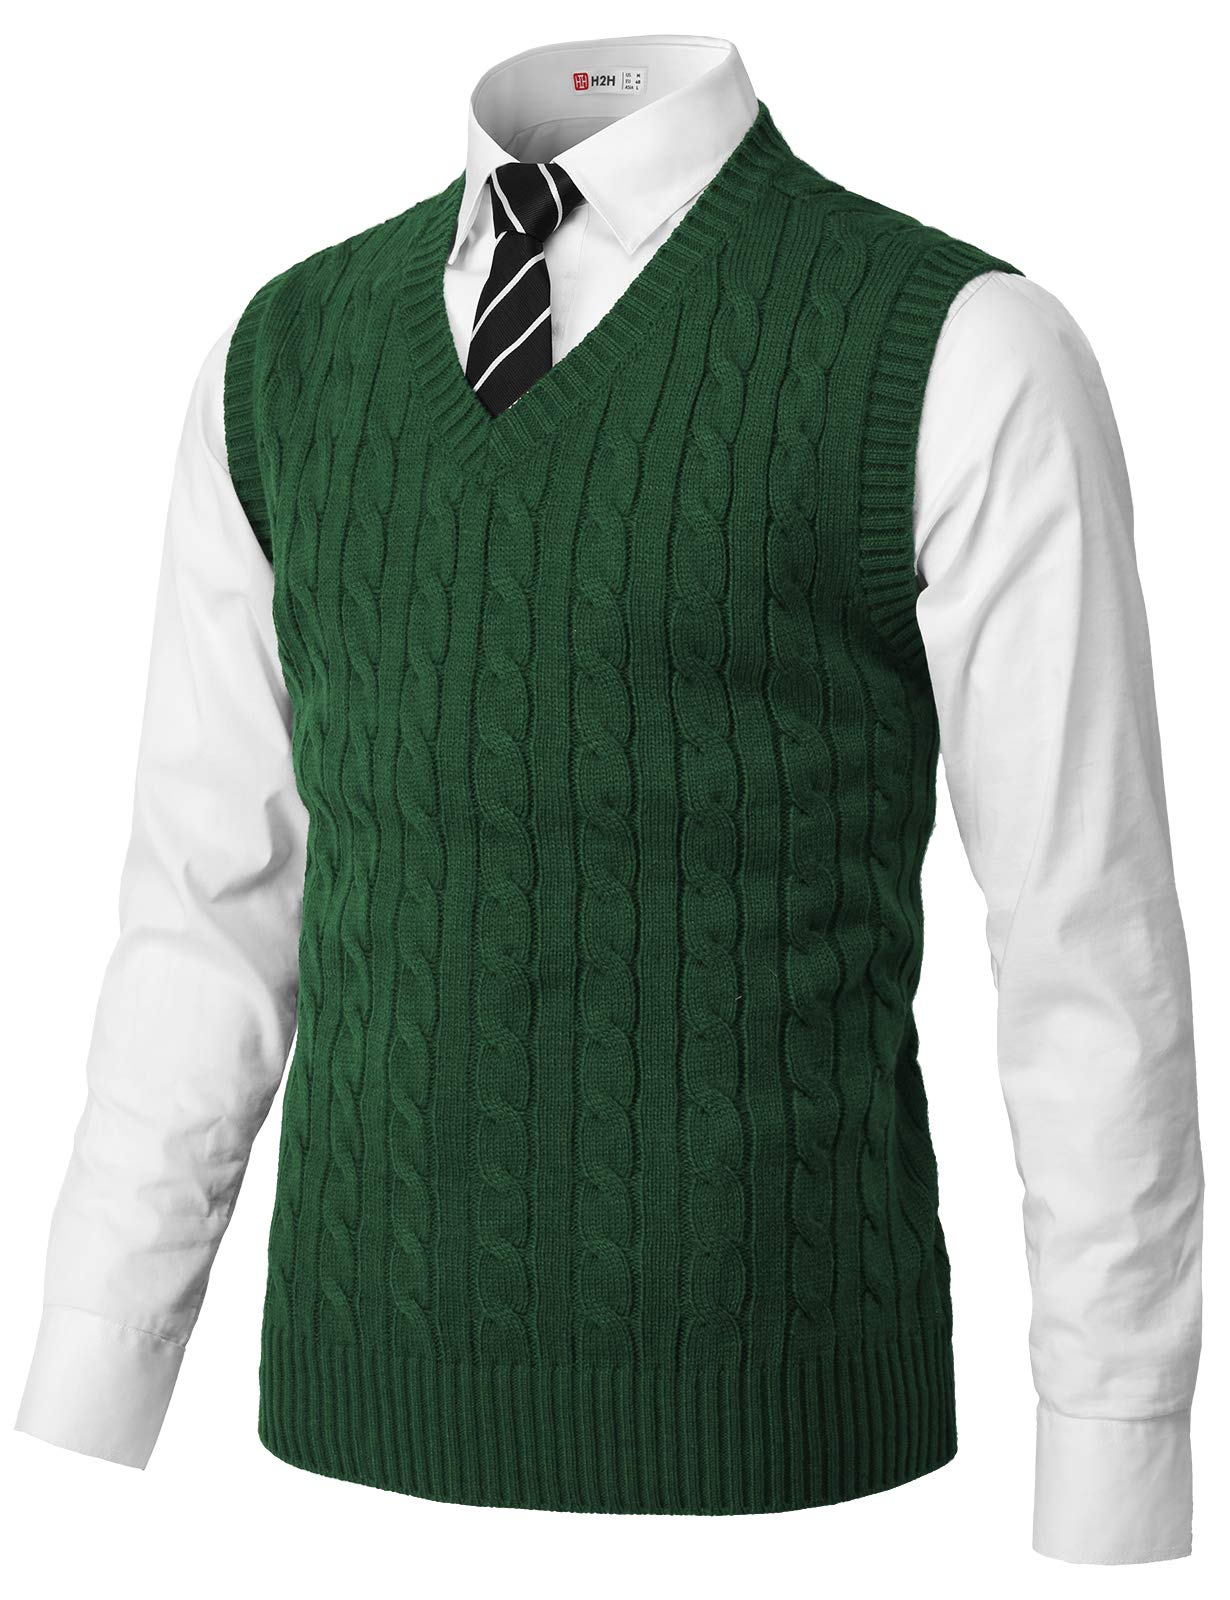 H2H Mens Casual Slim Fit Pullover Sweaters Knitted Vest Green US 2XL/Asia 3XL (CMOV052) by H2H